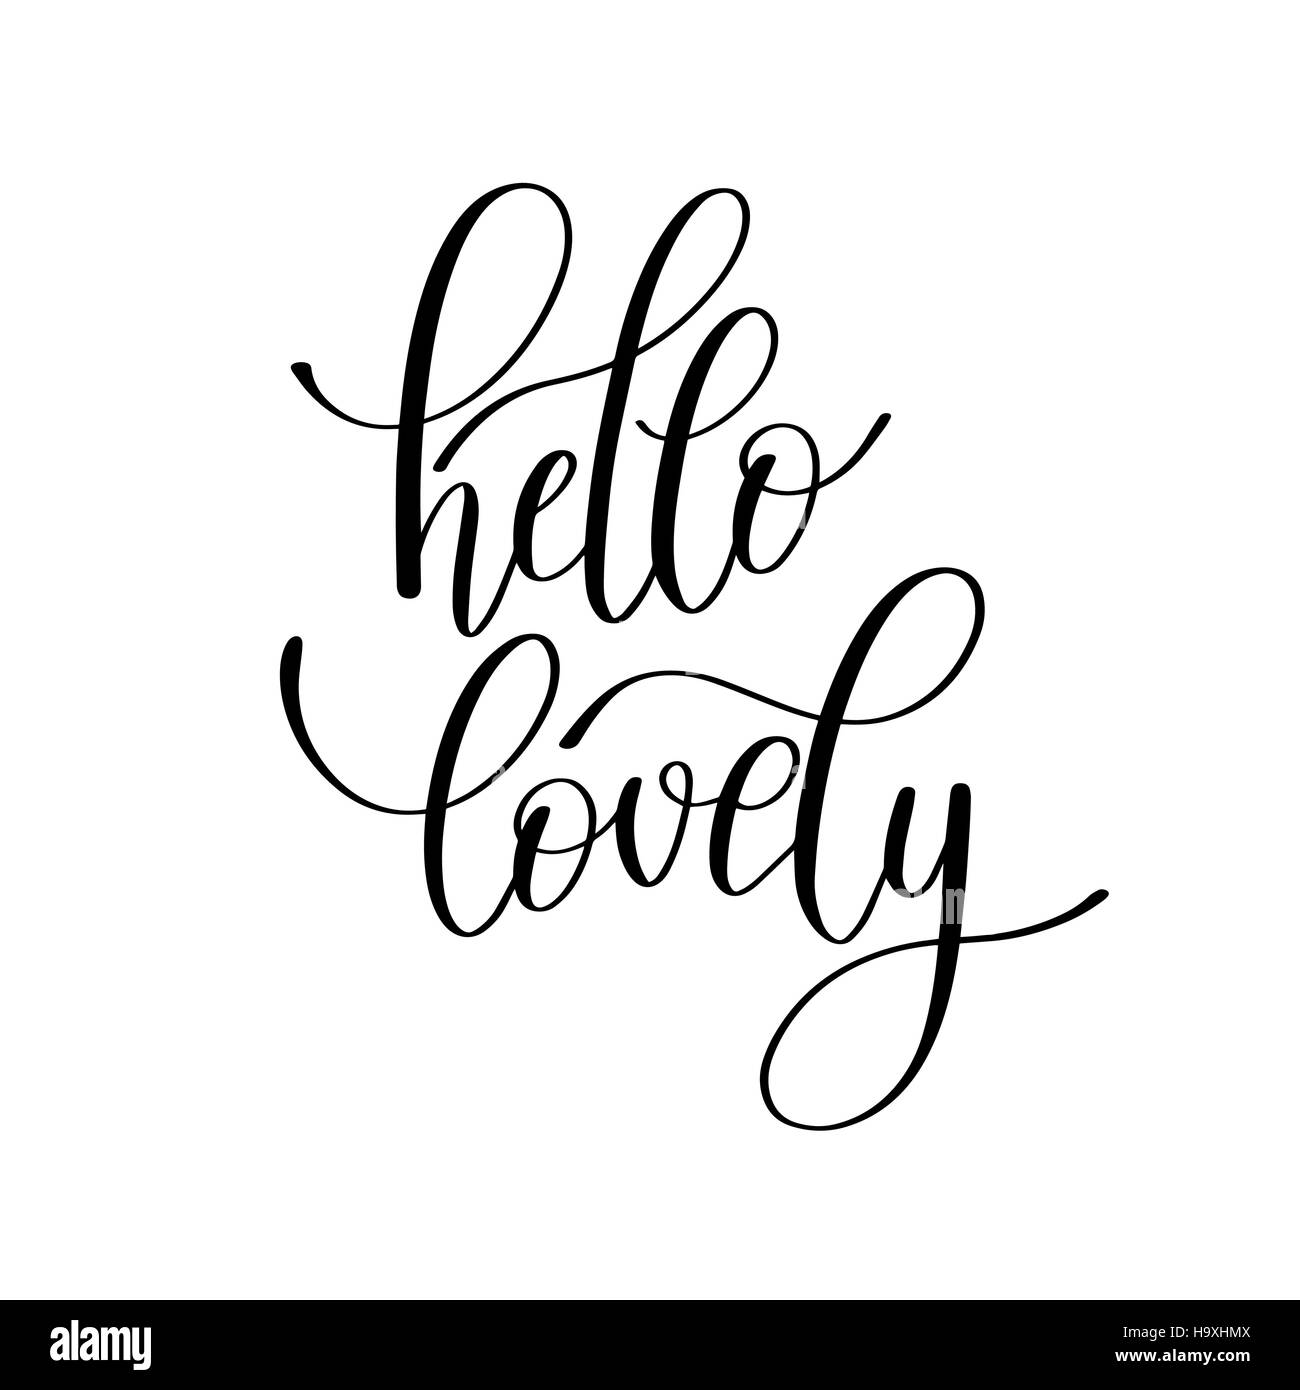 Hello lovely handwritten calligraphy lettering quote to